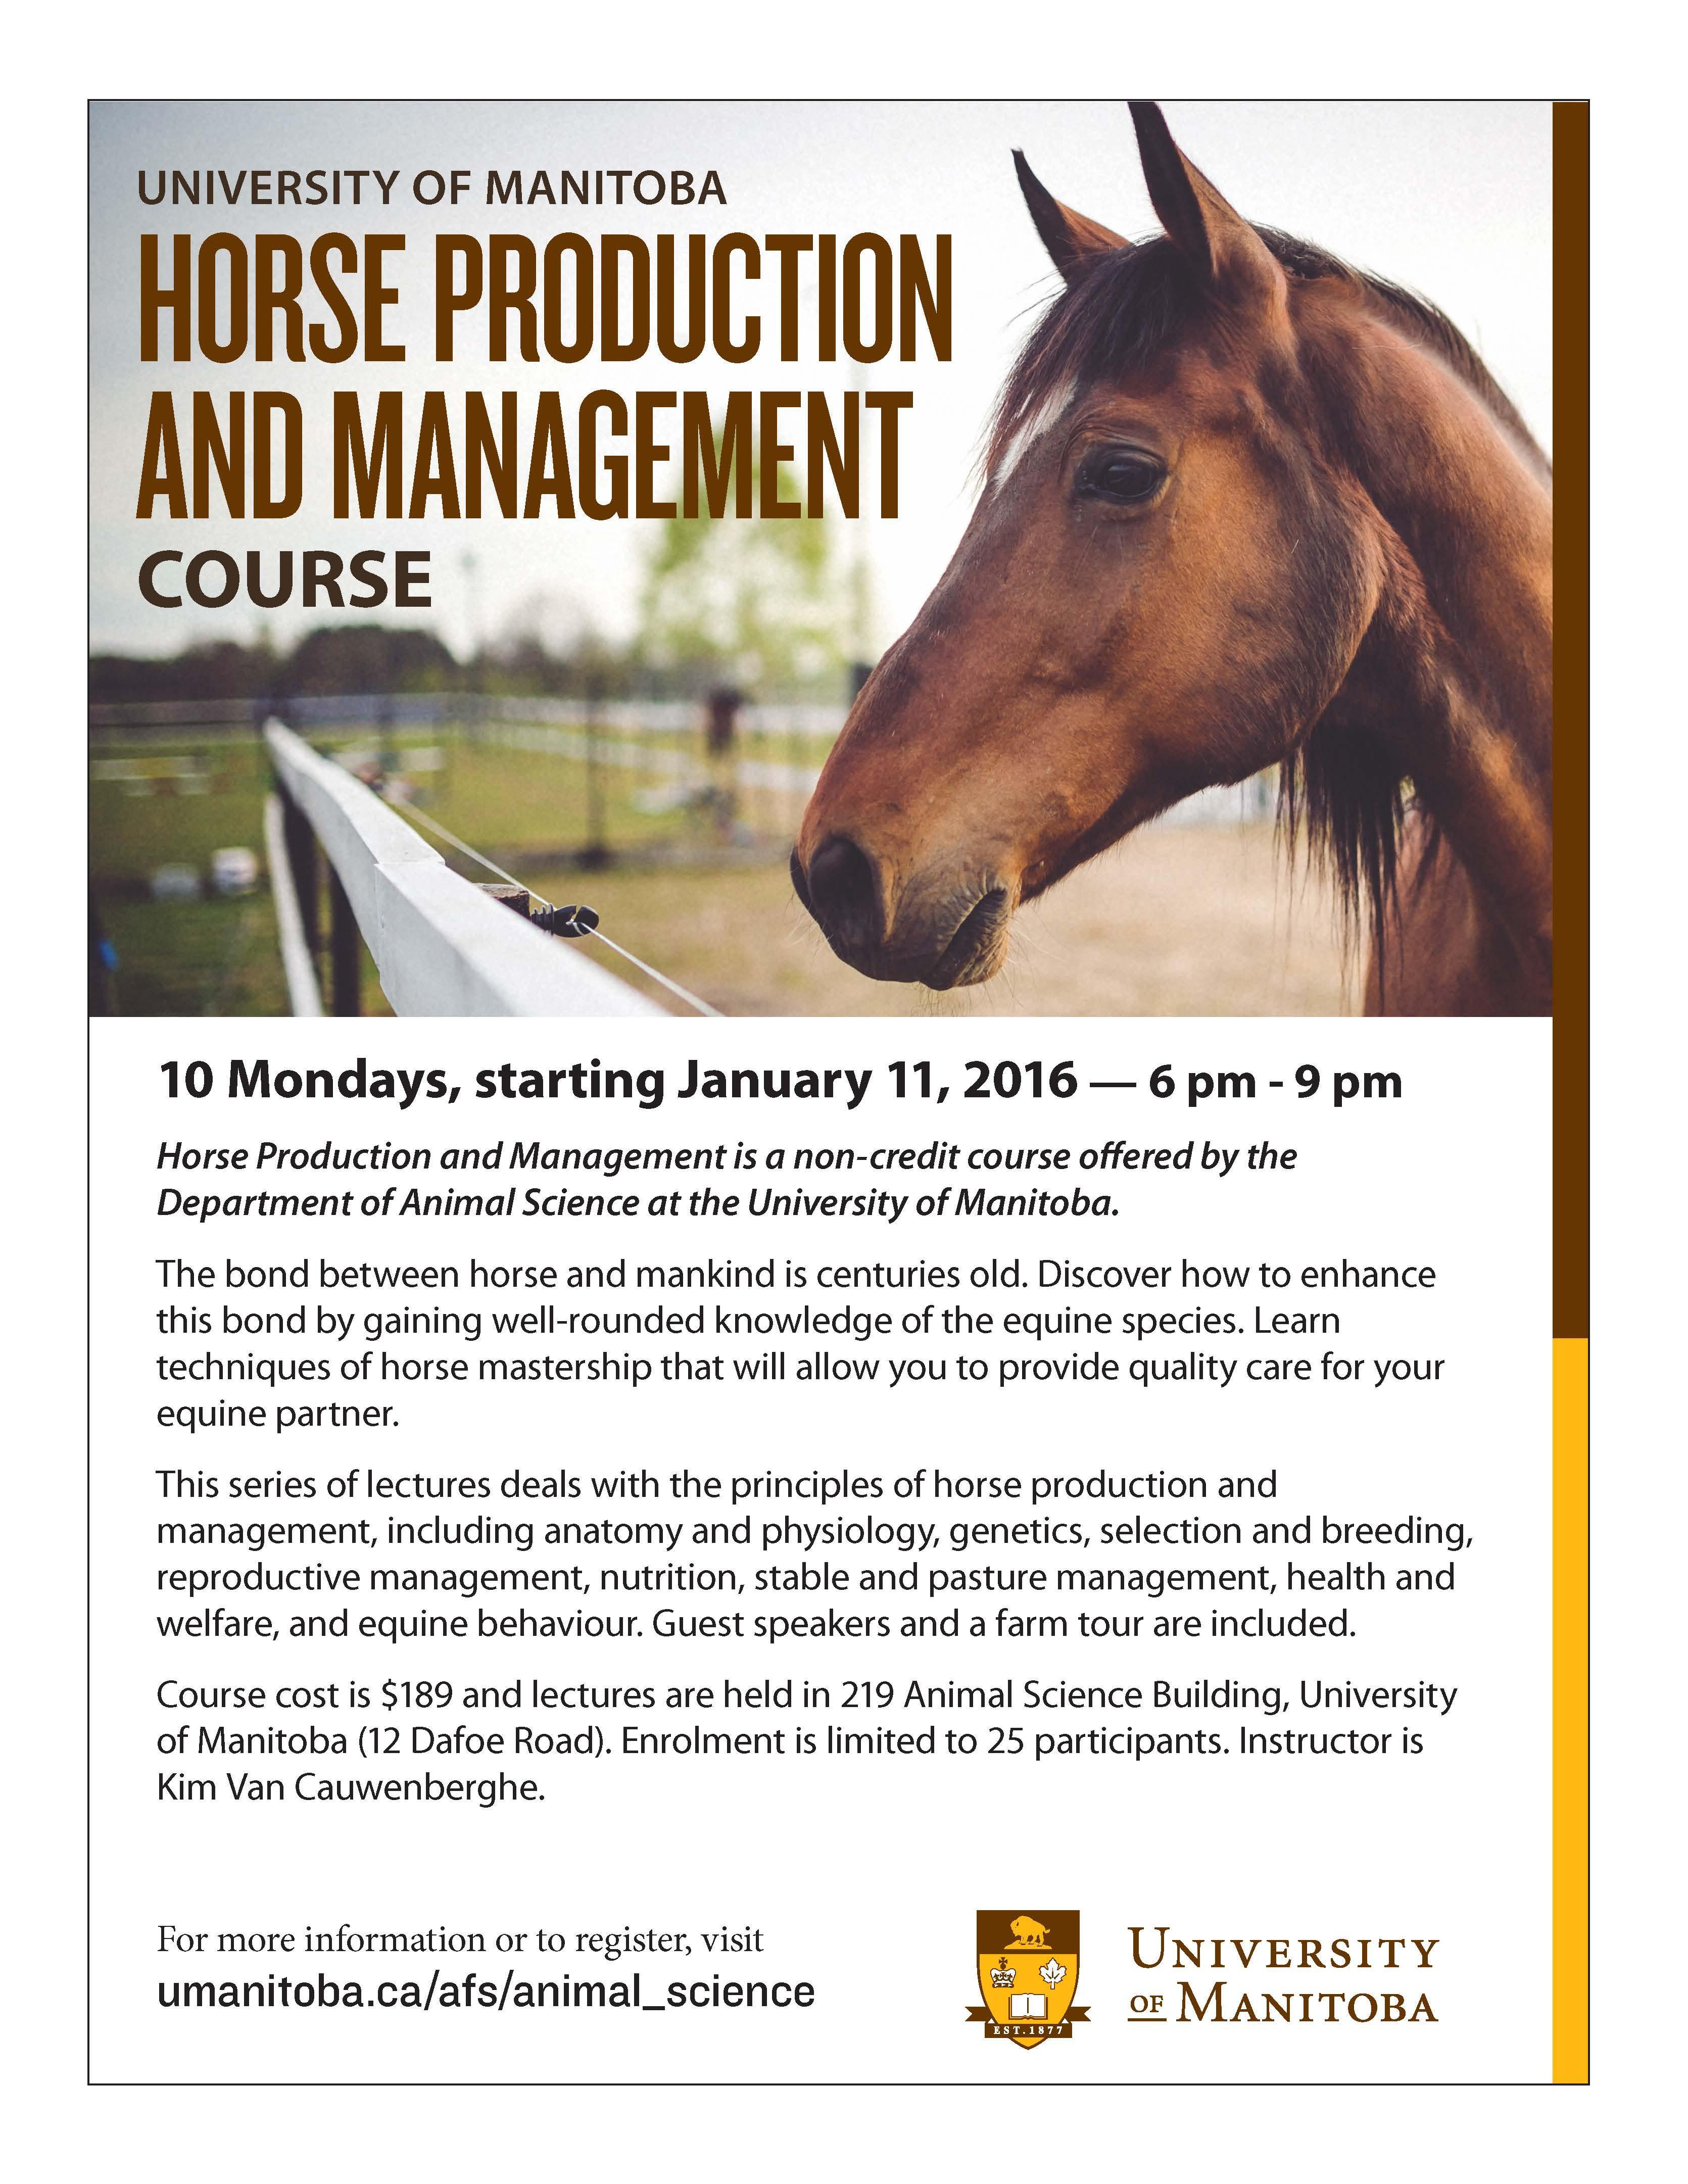 Horse Production and Management Course @ University of Manitoba ...